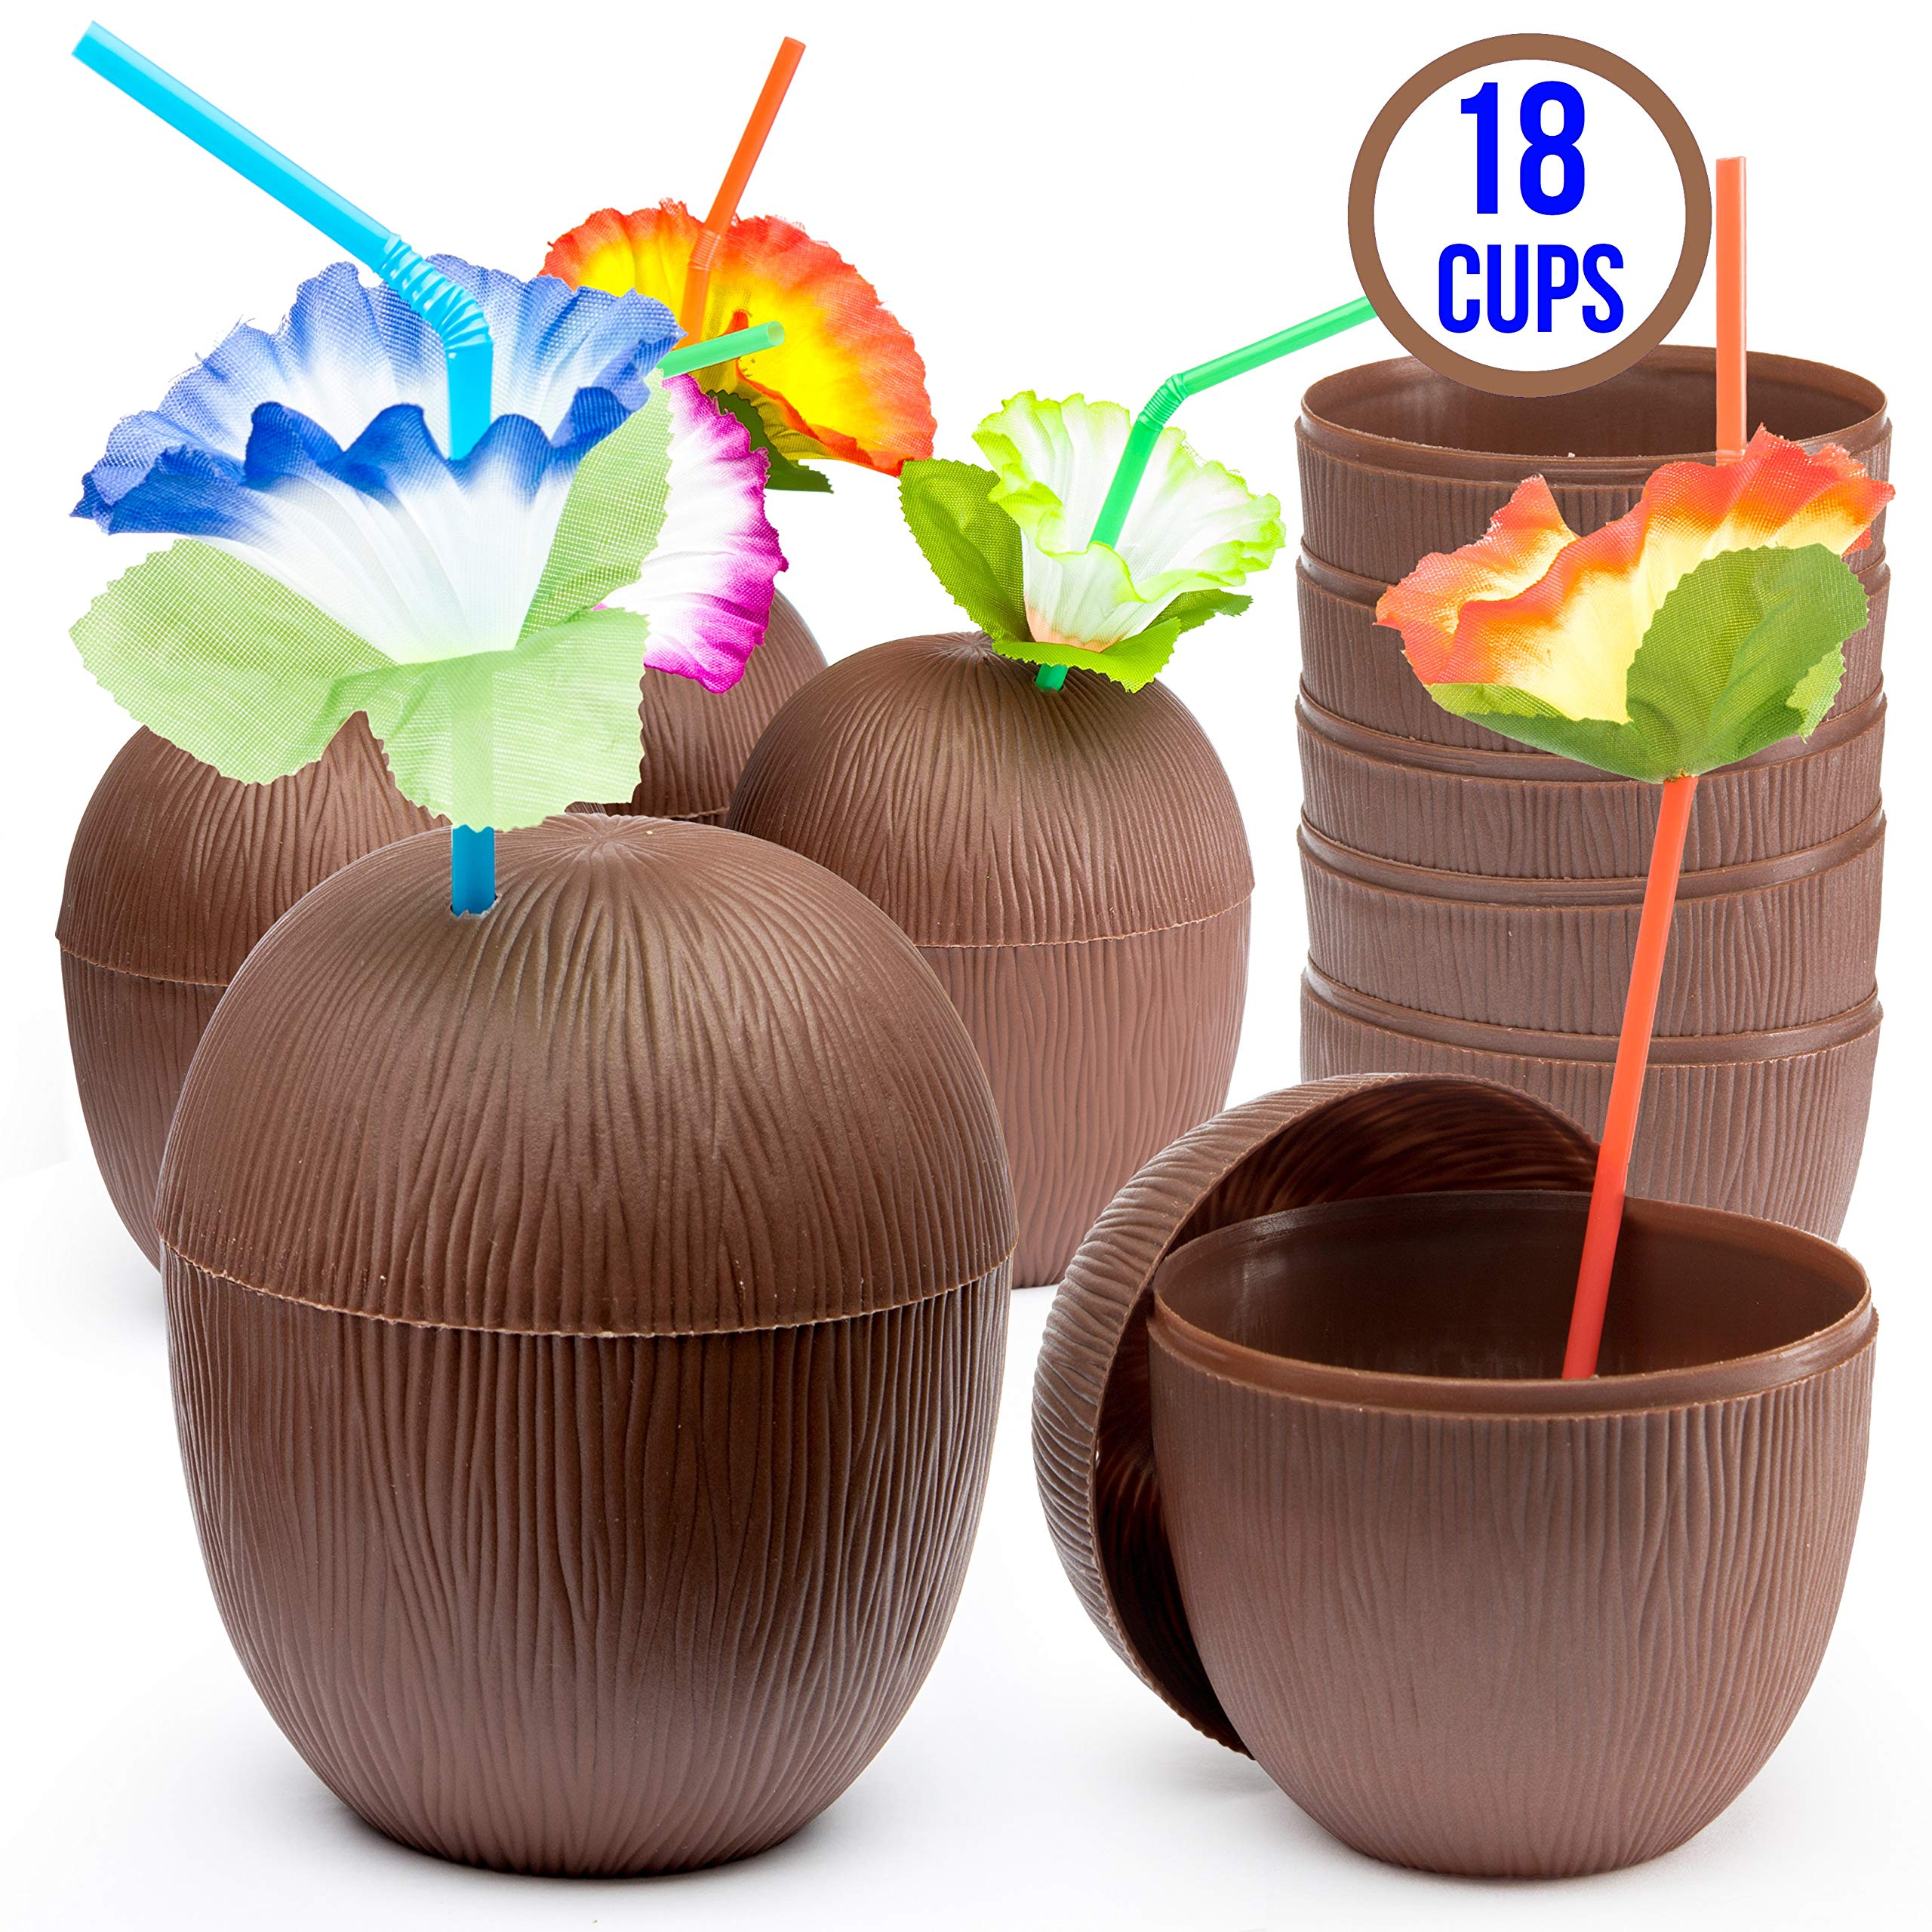 Prextex 18 Pack Coconut Cups for Hawaiian Luau Kids Party with Hibiscus Flower Straws - Tiki and Beach Theme Party Fun Drink or Decoration Cups (Improved Twist-Close Lids) by PREXTEX